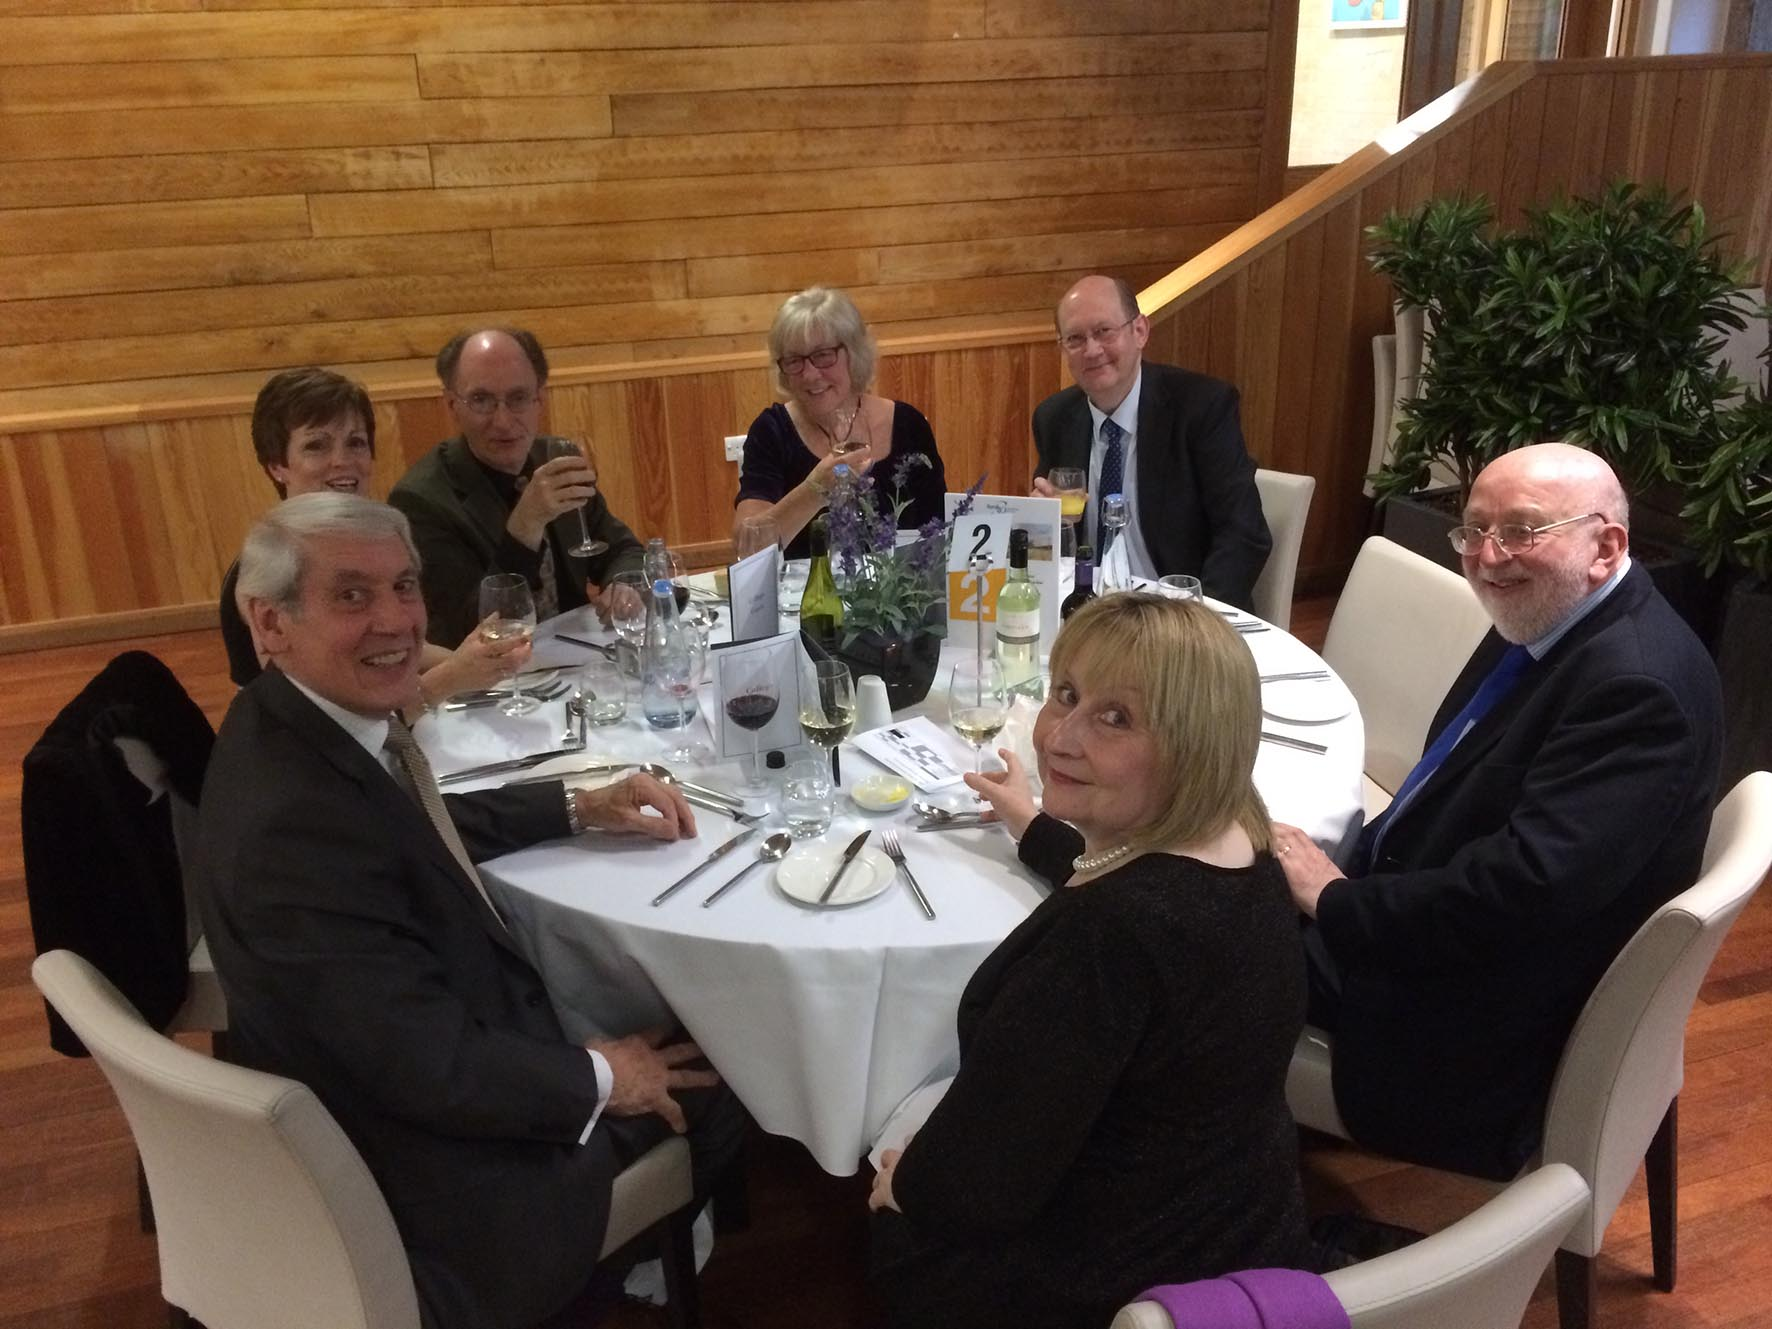 The Bardi holds 30th Anniversary Dinner at College Court, University of Leicester